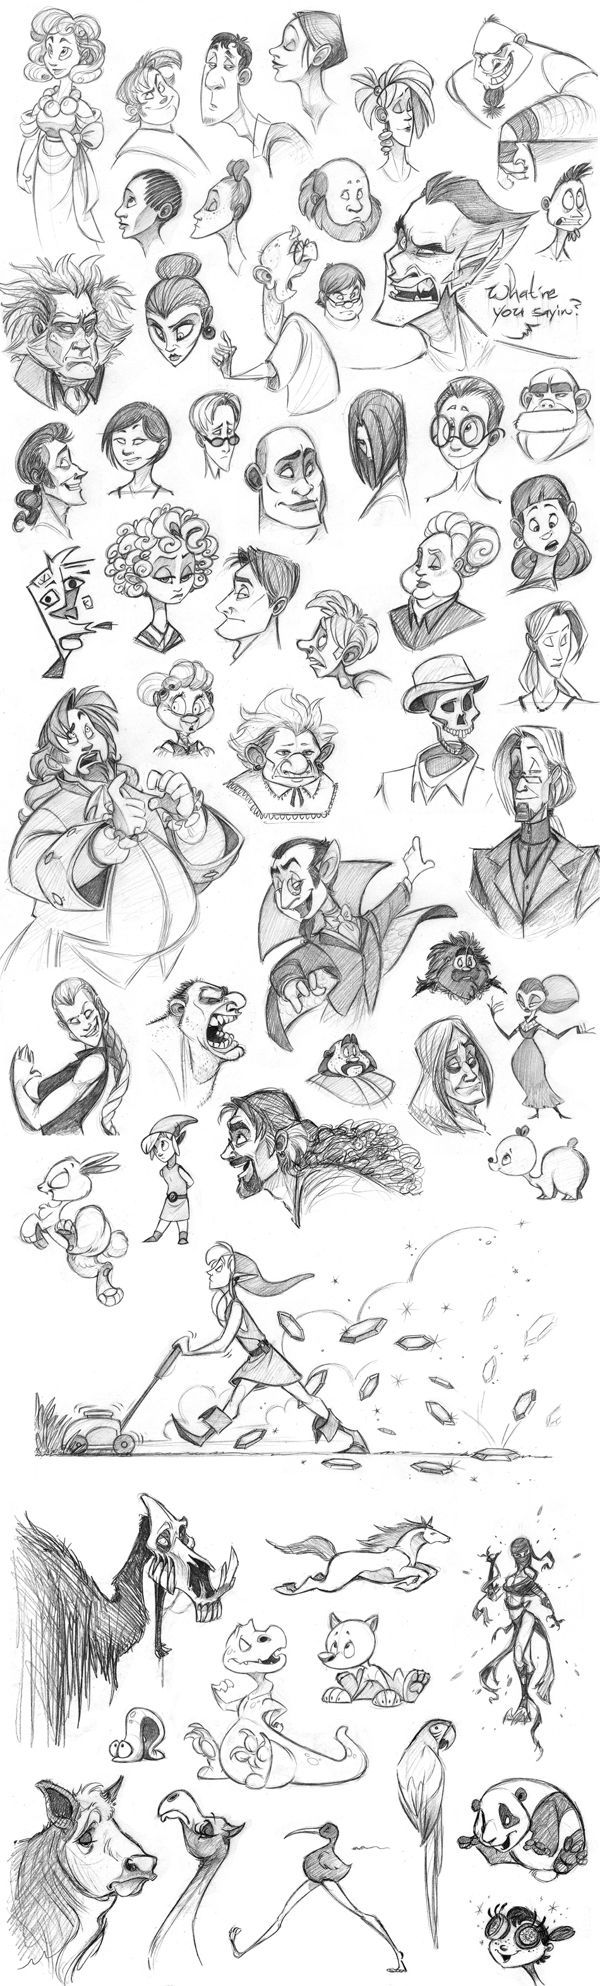 Character sketches.